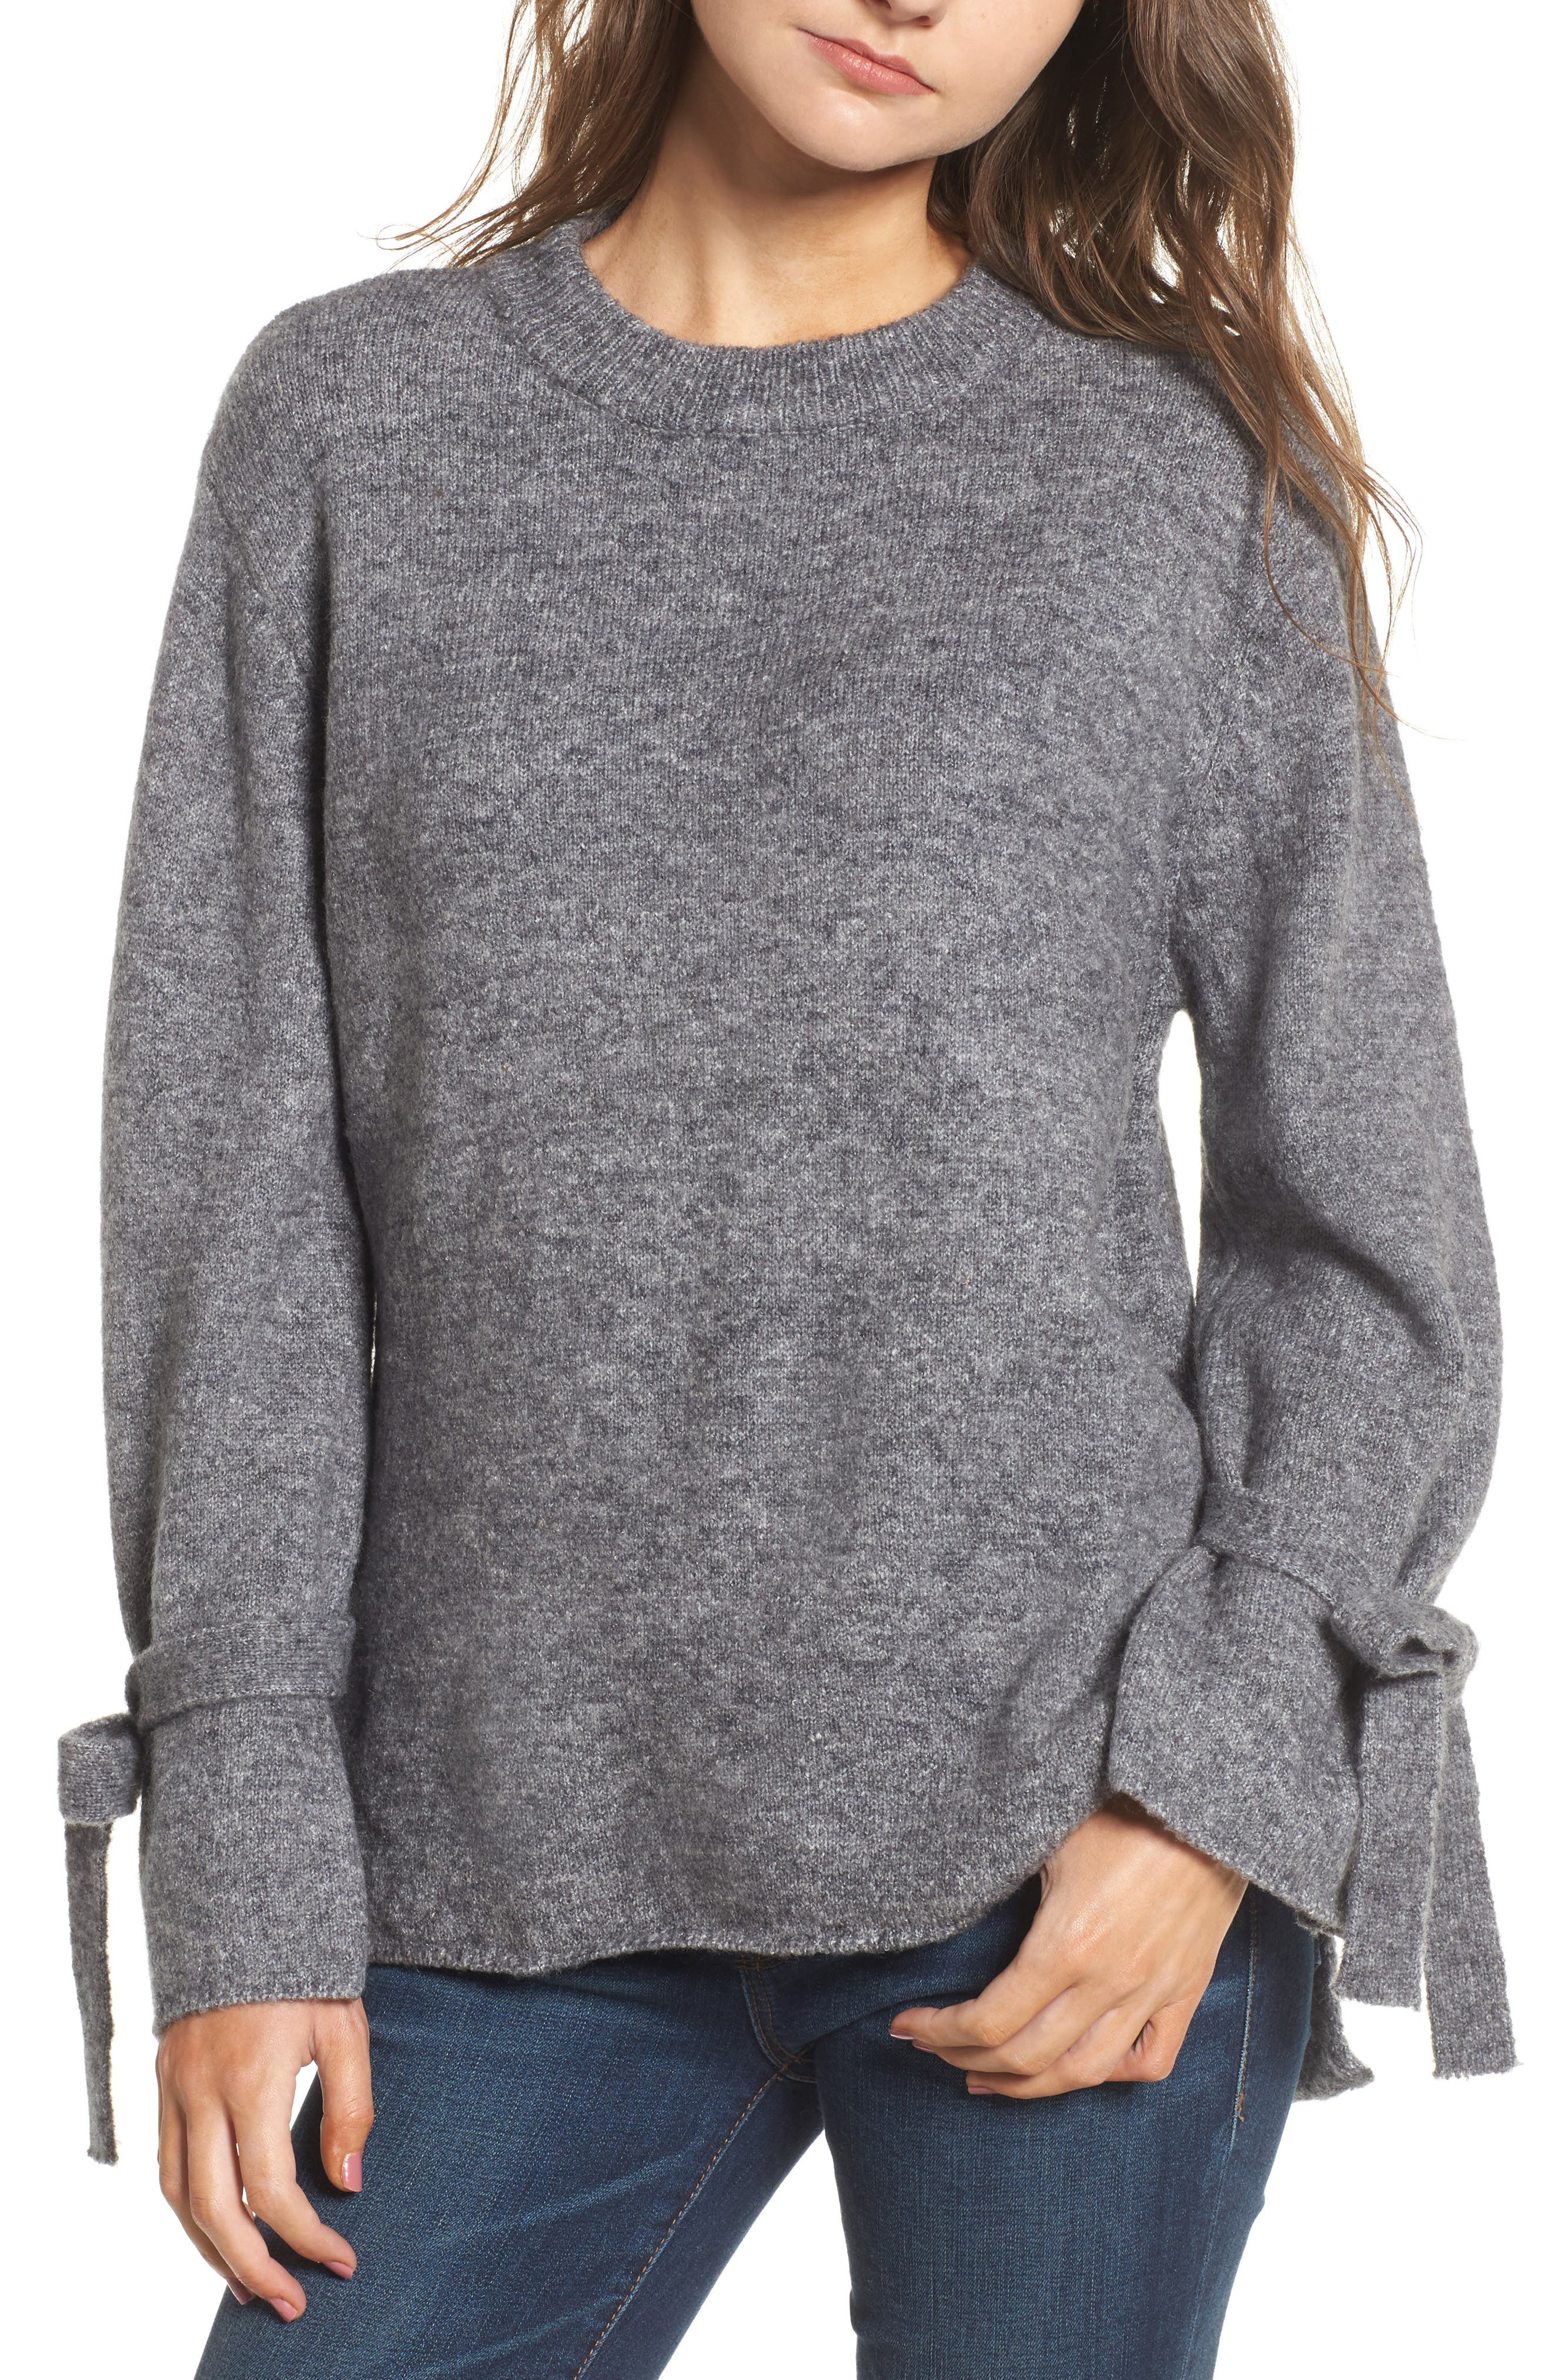 Juniors' & Teens' Sweaters | Nordstrom